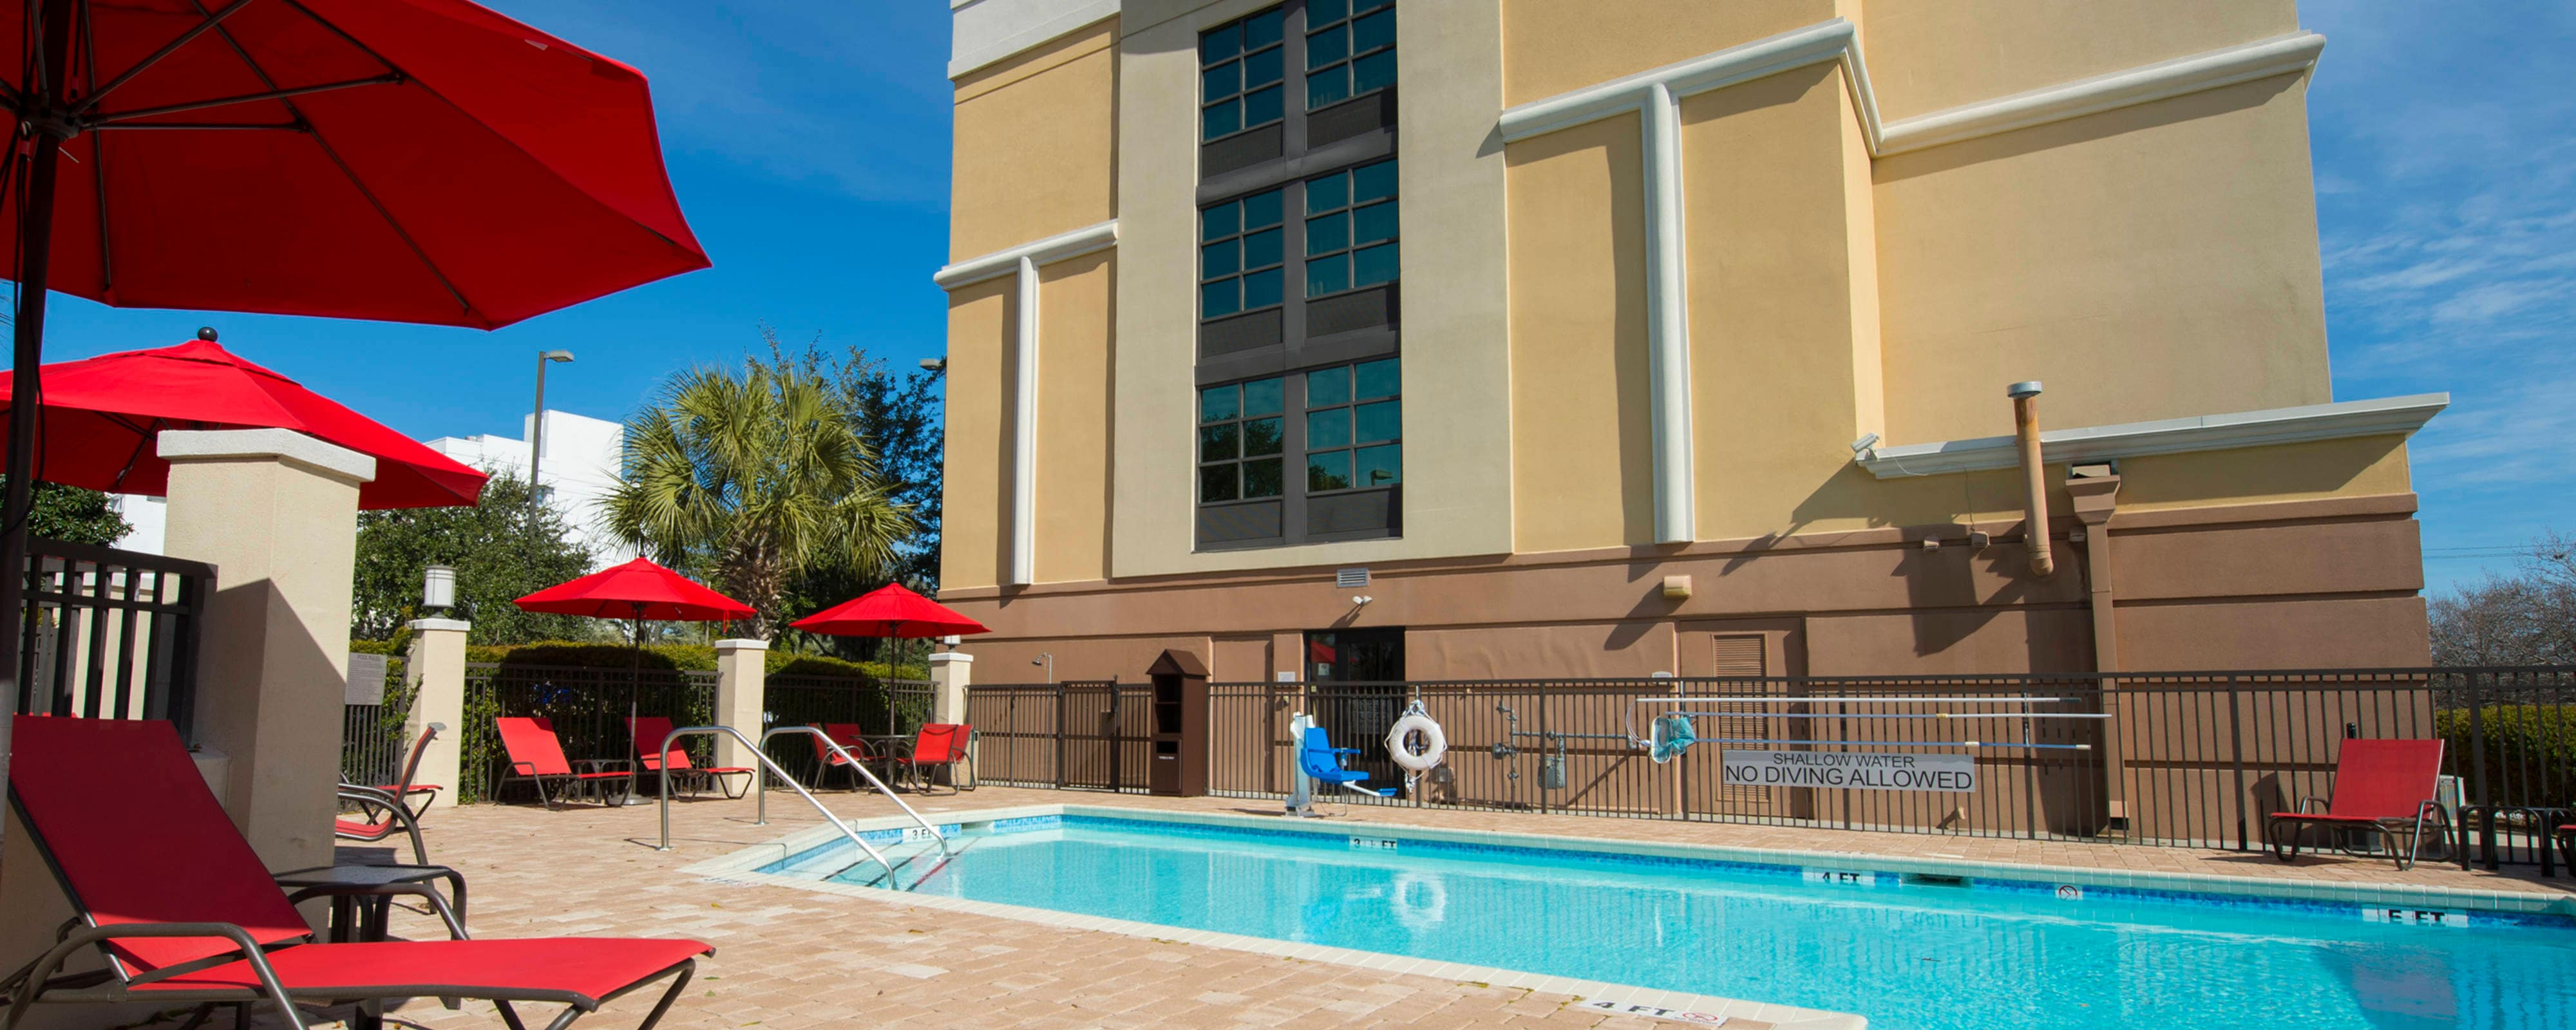 Charleston Airport Hotel Outdoor Pool